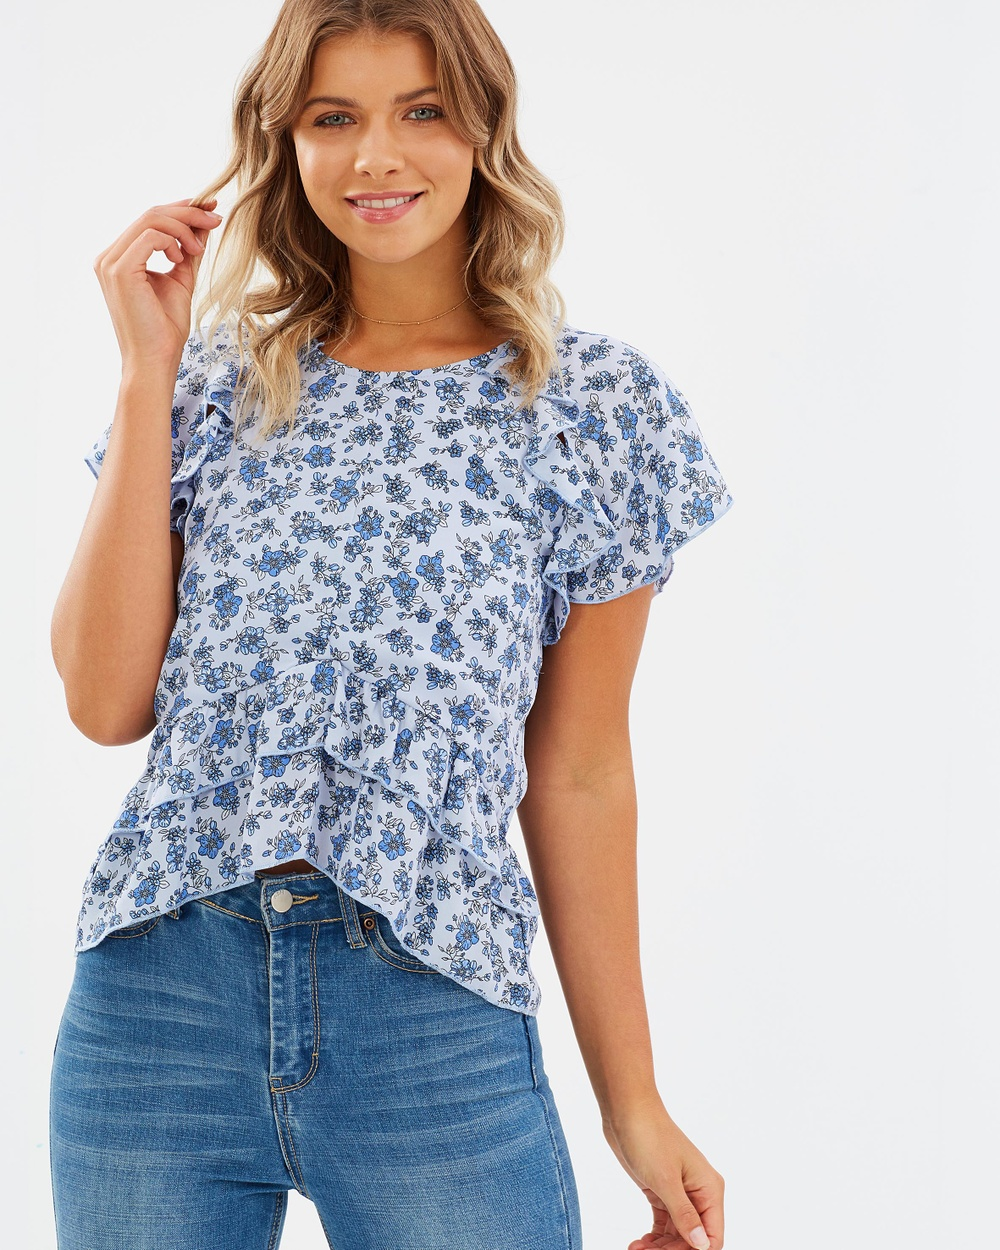 Atmos & Here ICONIC EXCLUSIVE Frances Flutter Top Tops Blue Floral ICONIC EXCLUSIVE Frances Flutter Top